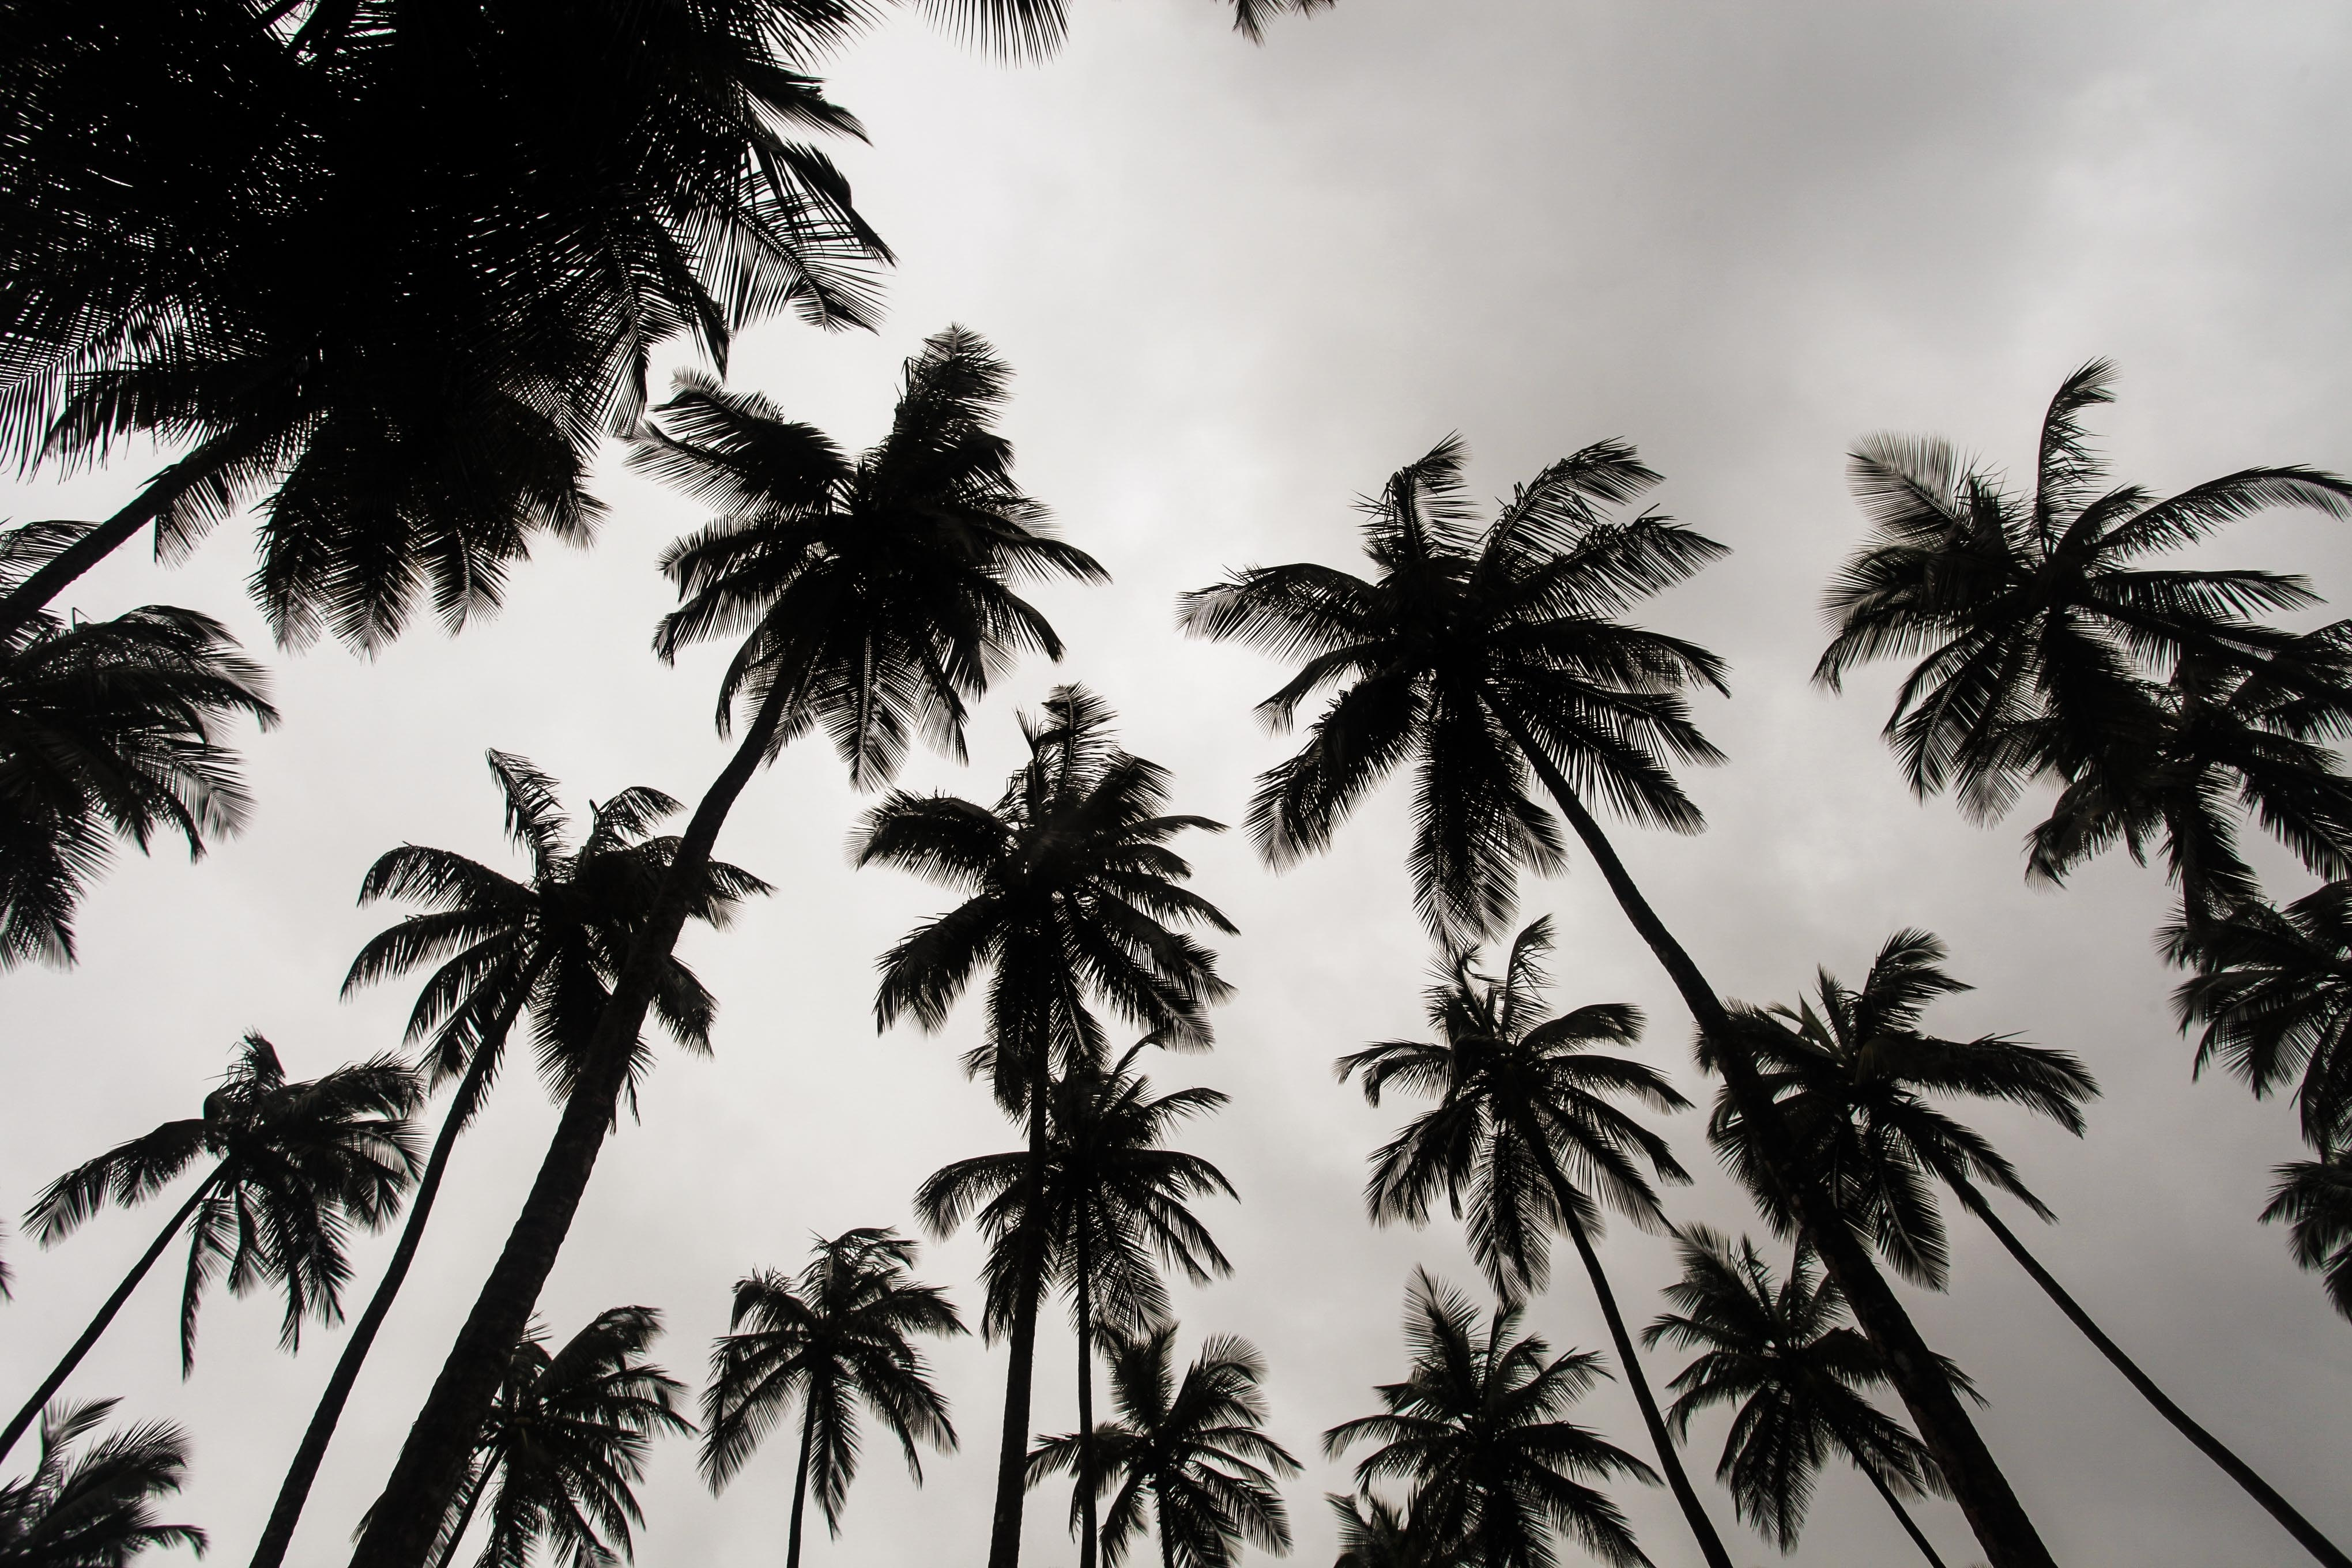 low angle photo of coconut trees during daytime